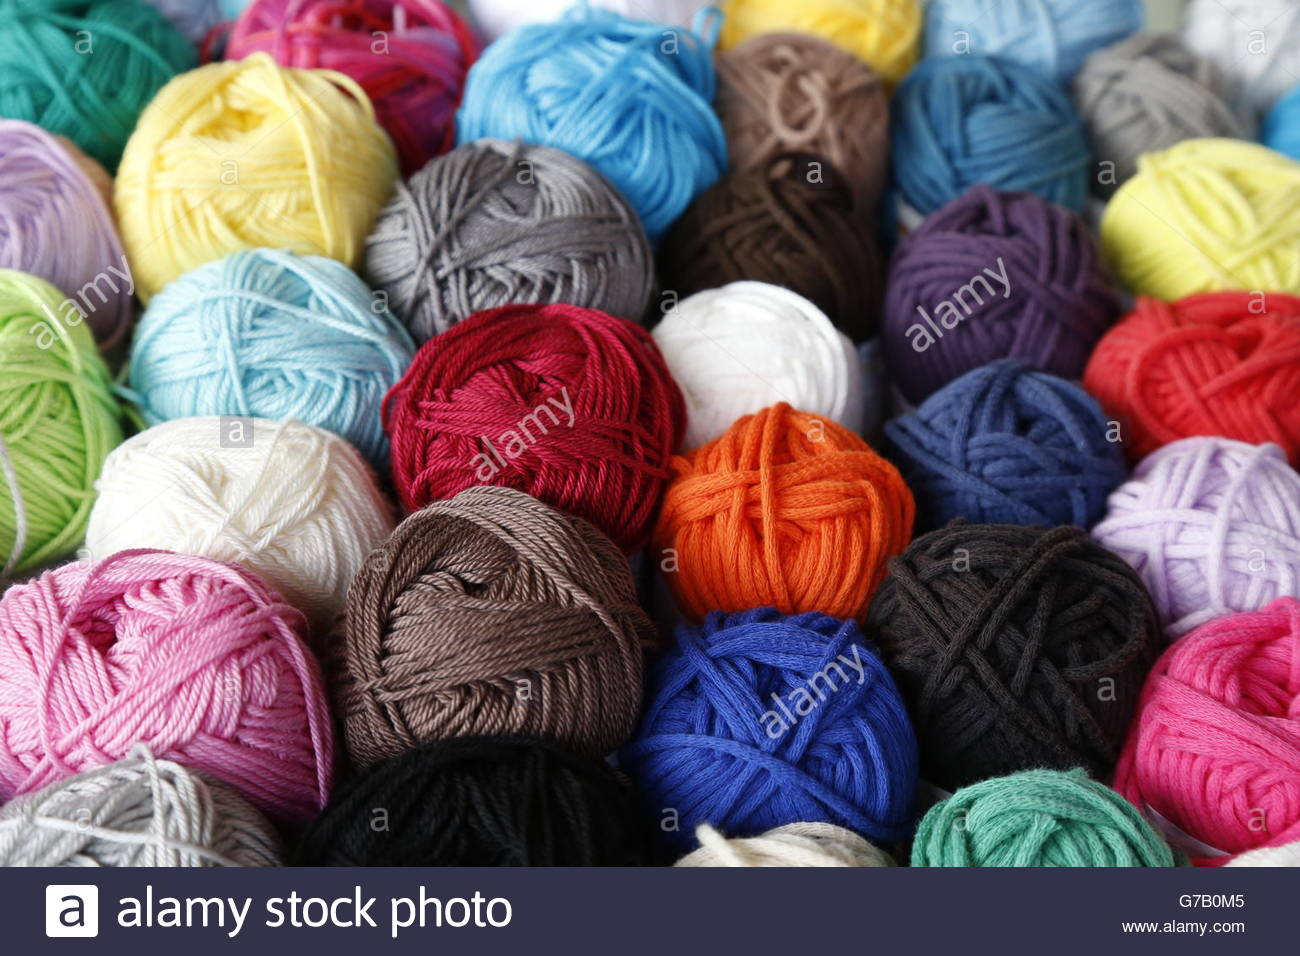 wool for knitting - Stock Image